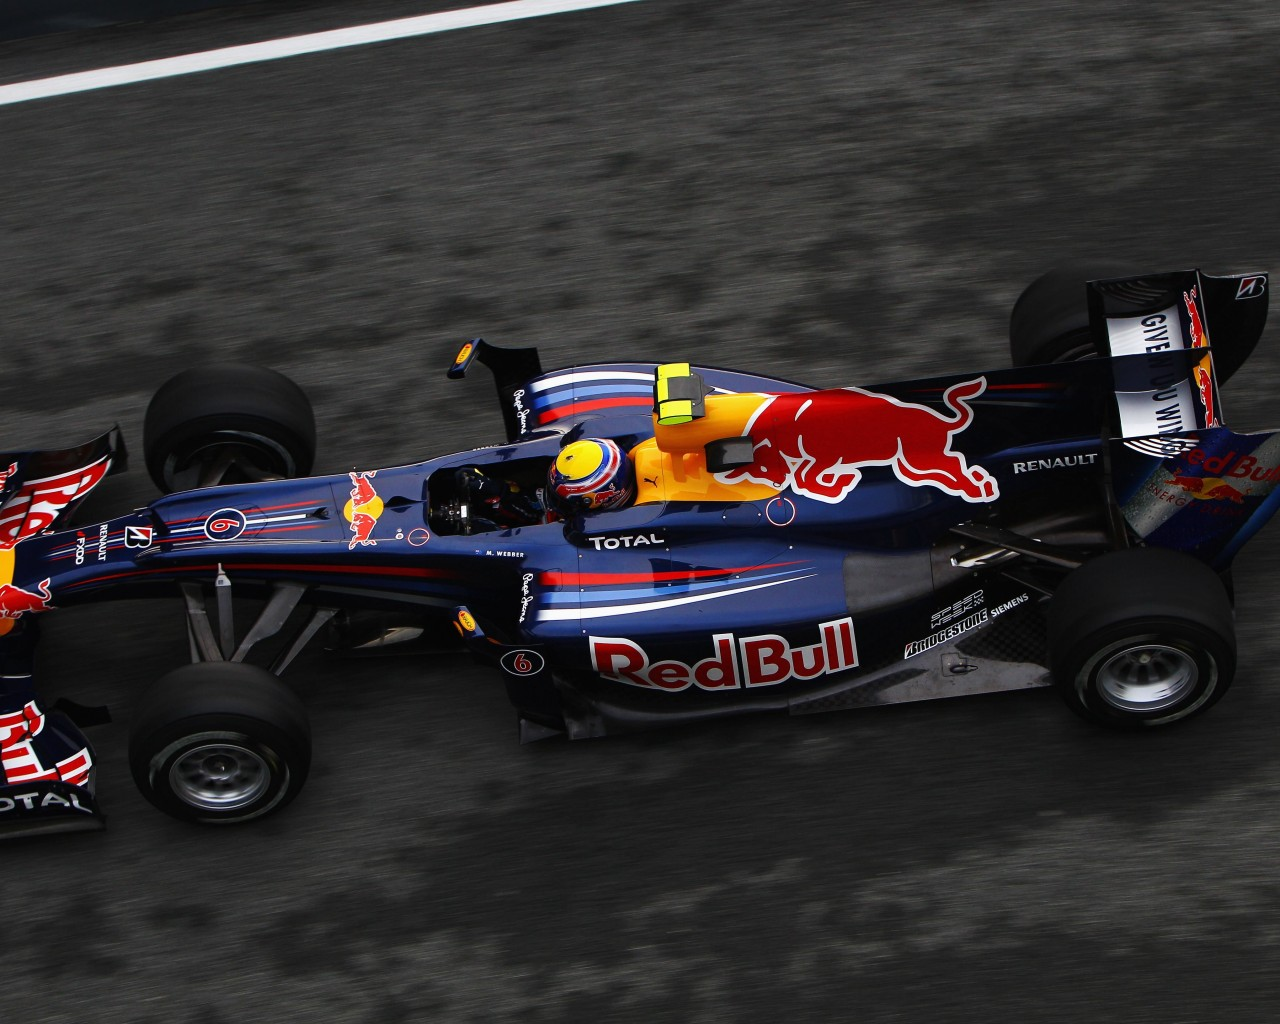 F1 Red Bull Team Wallpaper for Desktop 1280x1024